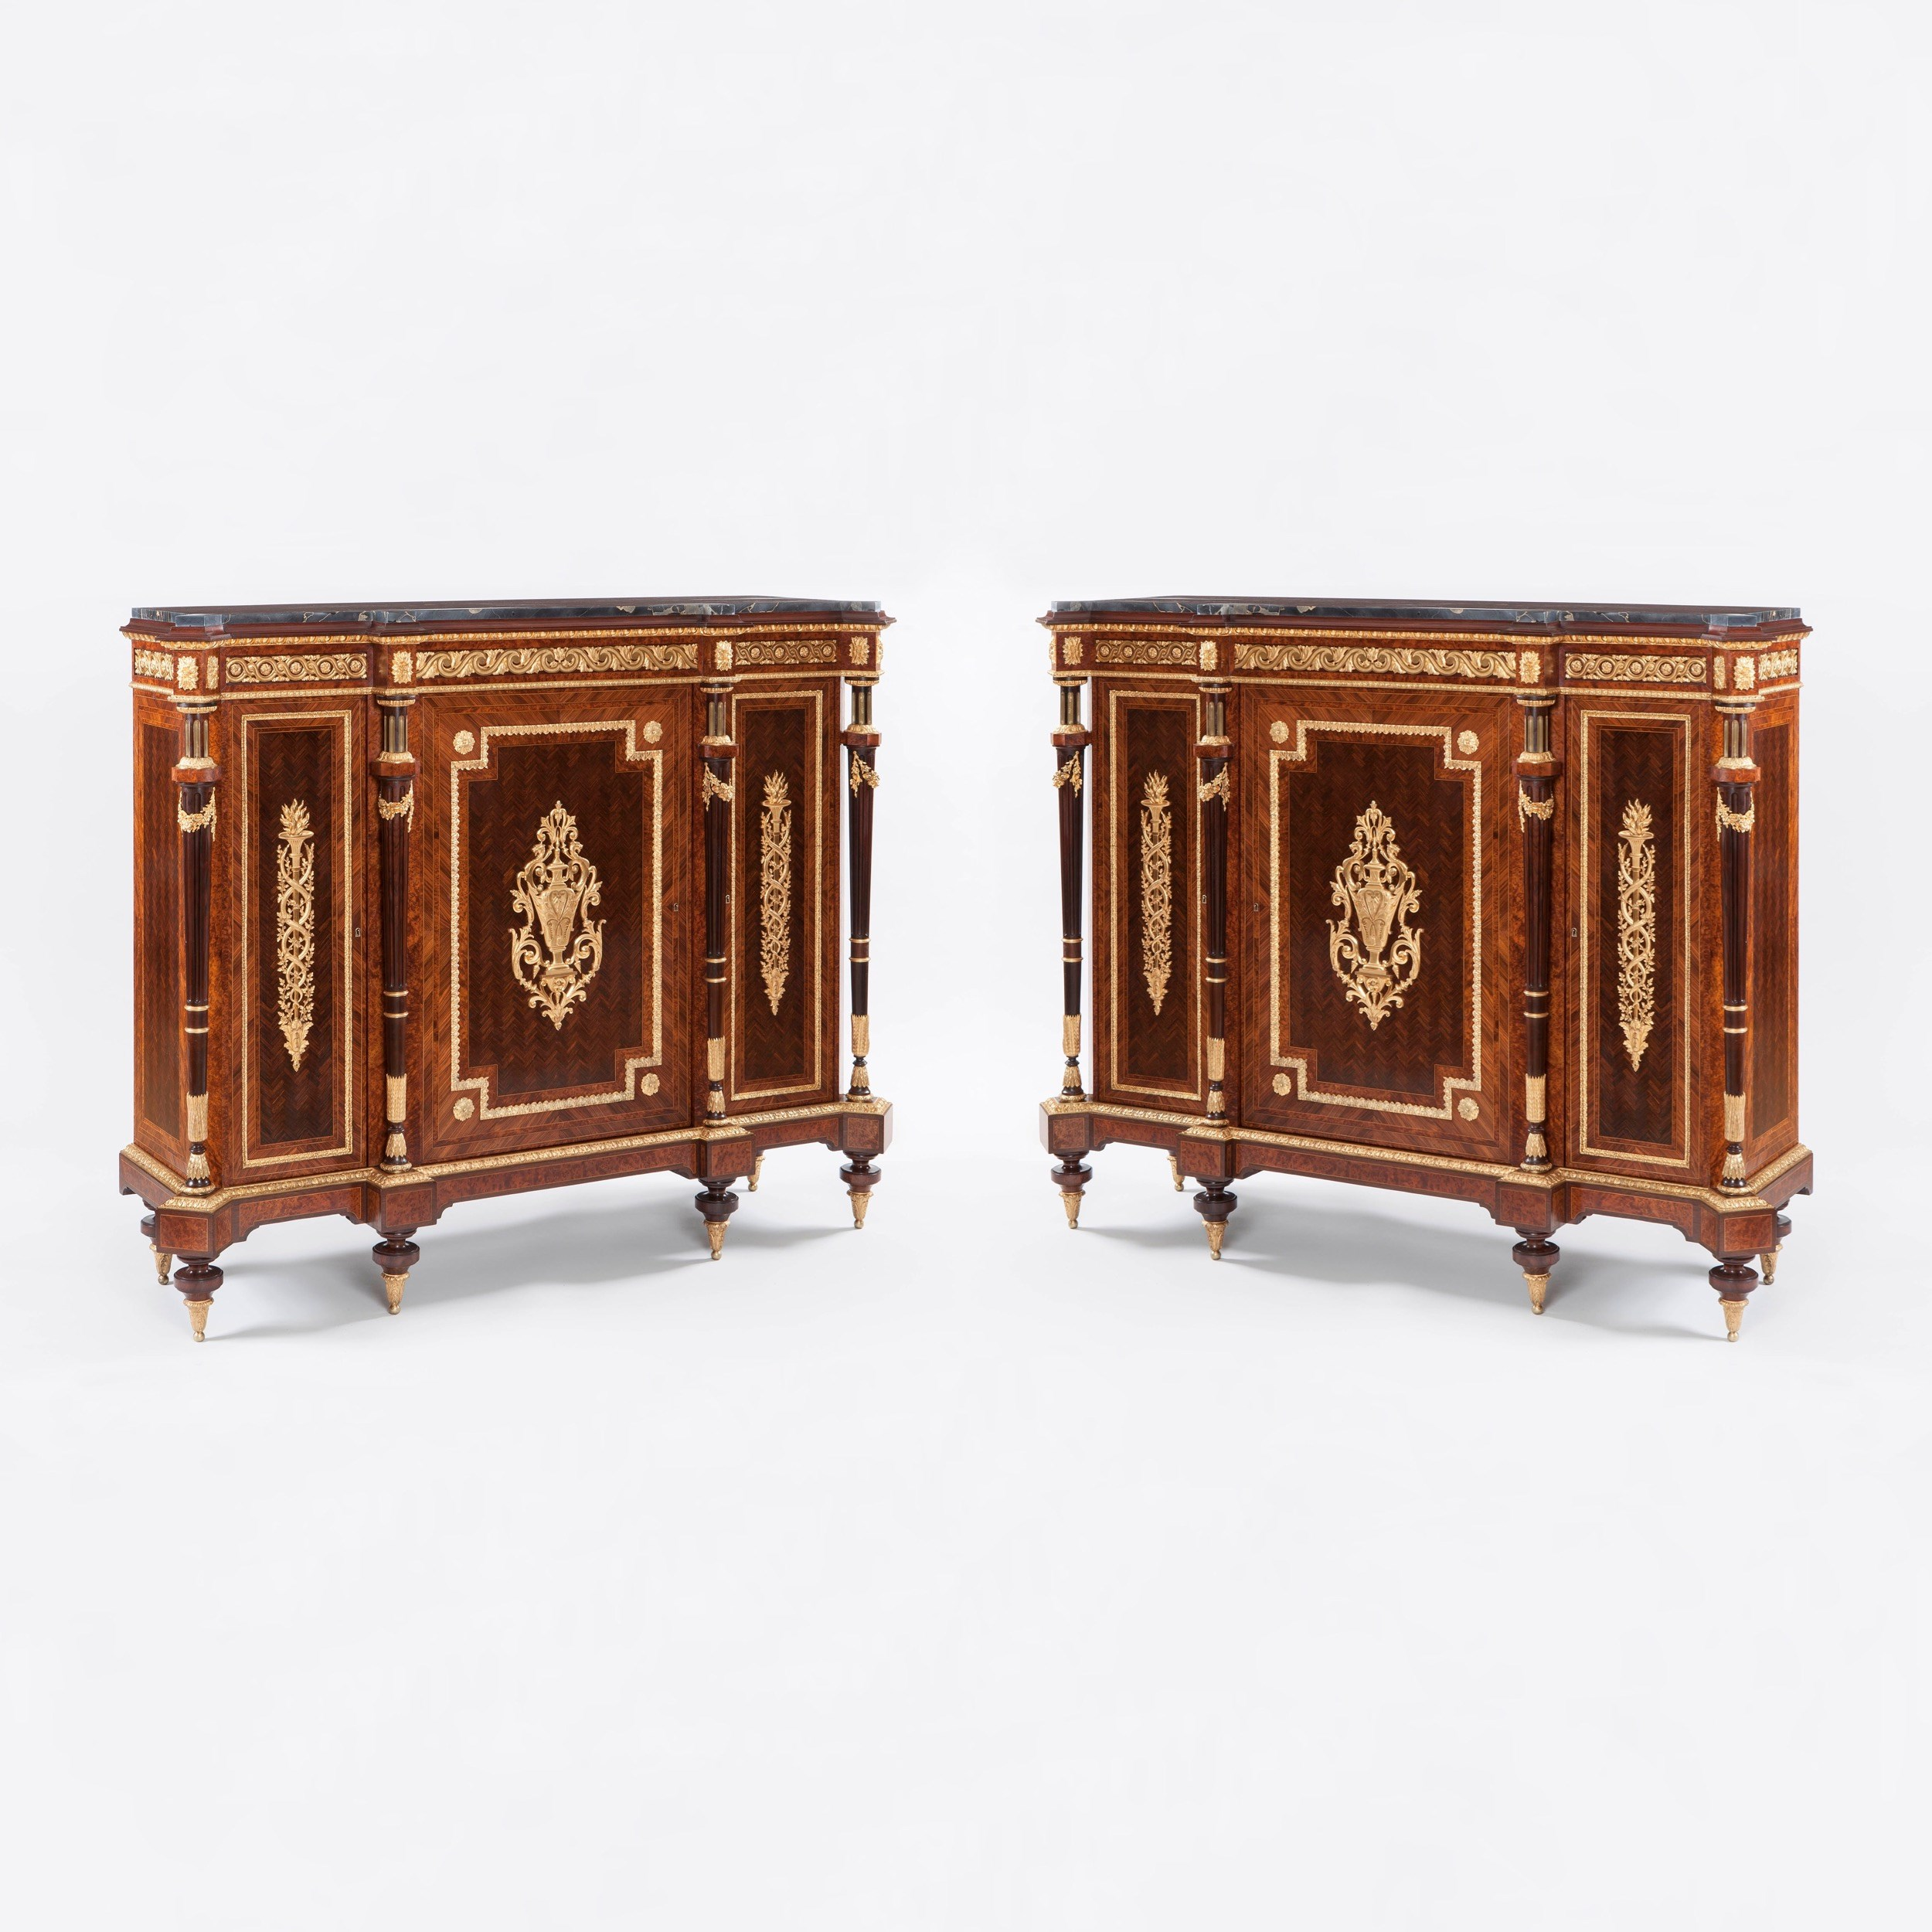 A Good Pair of Meuble d'Hauteurs d'Appui By Henri Picard of the Napoleon III Period Constructed using fine kingwood, thuyawood and amaranth veneers laid in complex book matched and chevron parquetry, and dressed with excellent gilt bronze mounts stamped on the reverse 'HPR' for Henry Picard of Paris; of breakfront form with everted angles, each rising from six tapering ormolu toupie feet supporting shaped, and ormolu dressed plinths, with three lockable doors enclosing shelved interiors, interspersed with ormolu swag and stiff leaf decorated fluted, ring-turned and tapering columns; the central doors with ormolu stylised Grecian urns within leaf cast ormolu frames set with paterae at the inverted angles: the flanking doors dressed with ormolu interwoven branches issuing flambeaux; the sides with further conforming parquetry and ormolu mounts, with the upper aprons set with Vitruvian form ormolu friezes, and having Portor marble inset platforms with everted angles. Bearing an old paper label reading 'Roux No.49, 1 Bahal'. French, Circa 1870 Dimensions: H: 52 in / 131.5 cm  |  W: 65 in / 164 cm  |  D: 19.5 in / 49 cm Similar models are recorded in Christopher Payne's '19th Century European Furniture' published by the Antique Collectors Club in 1981 Henri Picard, a notable fondeur and doreur, is recorded as working in Paris from 1831 to 1864, from 6 rue Jarente and later at 10 rue de la Perle. Their work was highly regarded by the Emperor Napoleon the Third, and they supplied furniture to his apartments in Fontainebleu, now on exhibit in the Louvre.